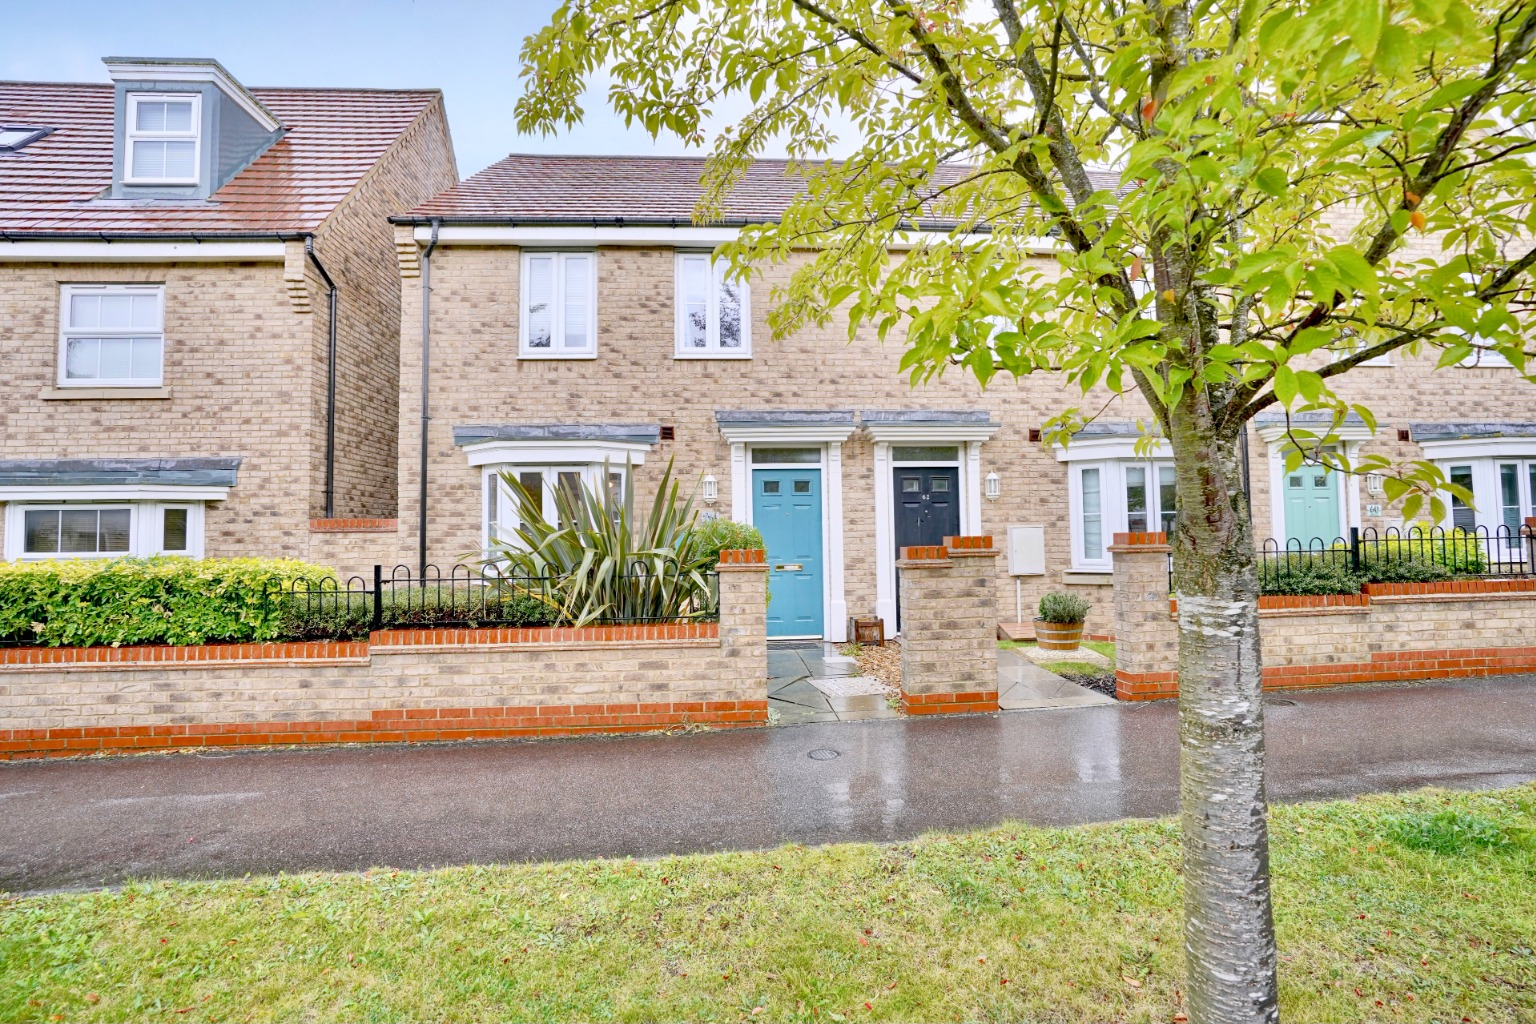 3 bed end of terrace house for sale in Stone Hill, Cambridgeshire 10